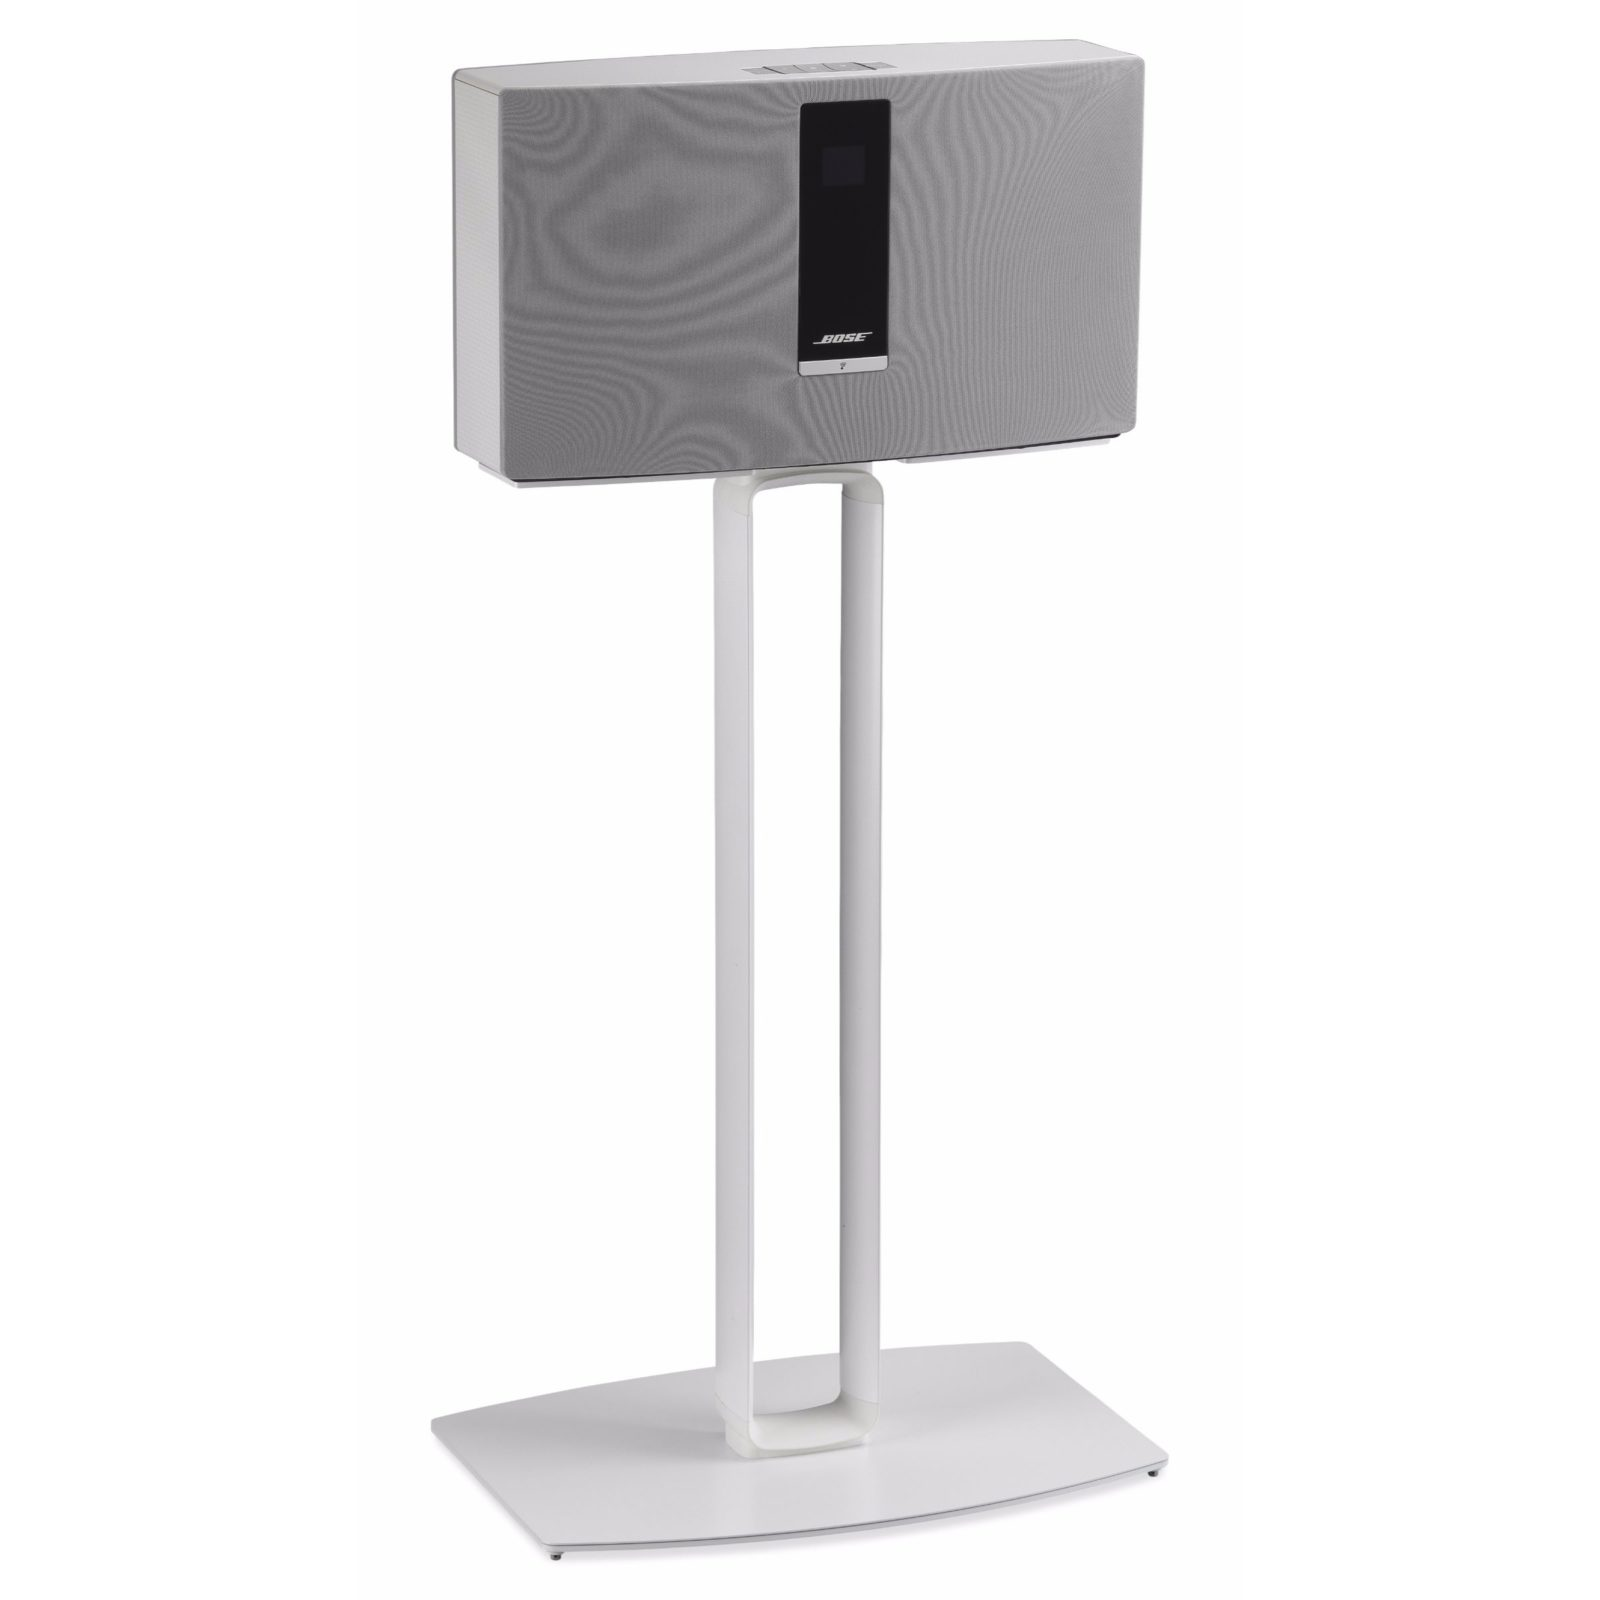 Bose SoundTouch 30 Standaard wit 4